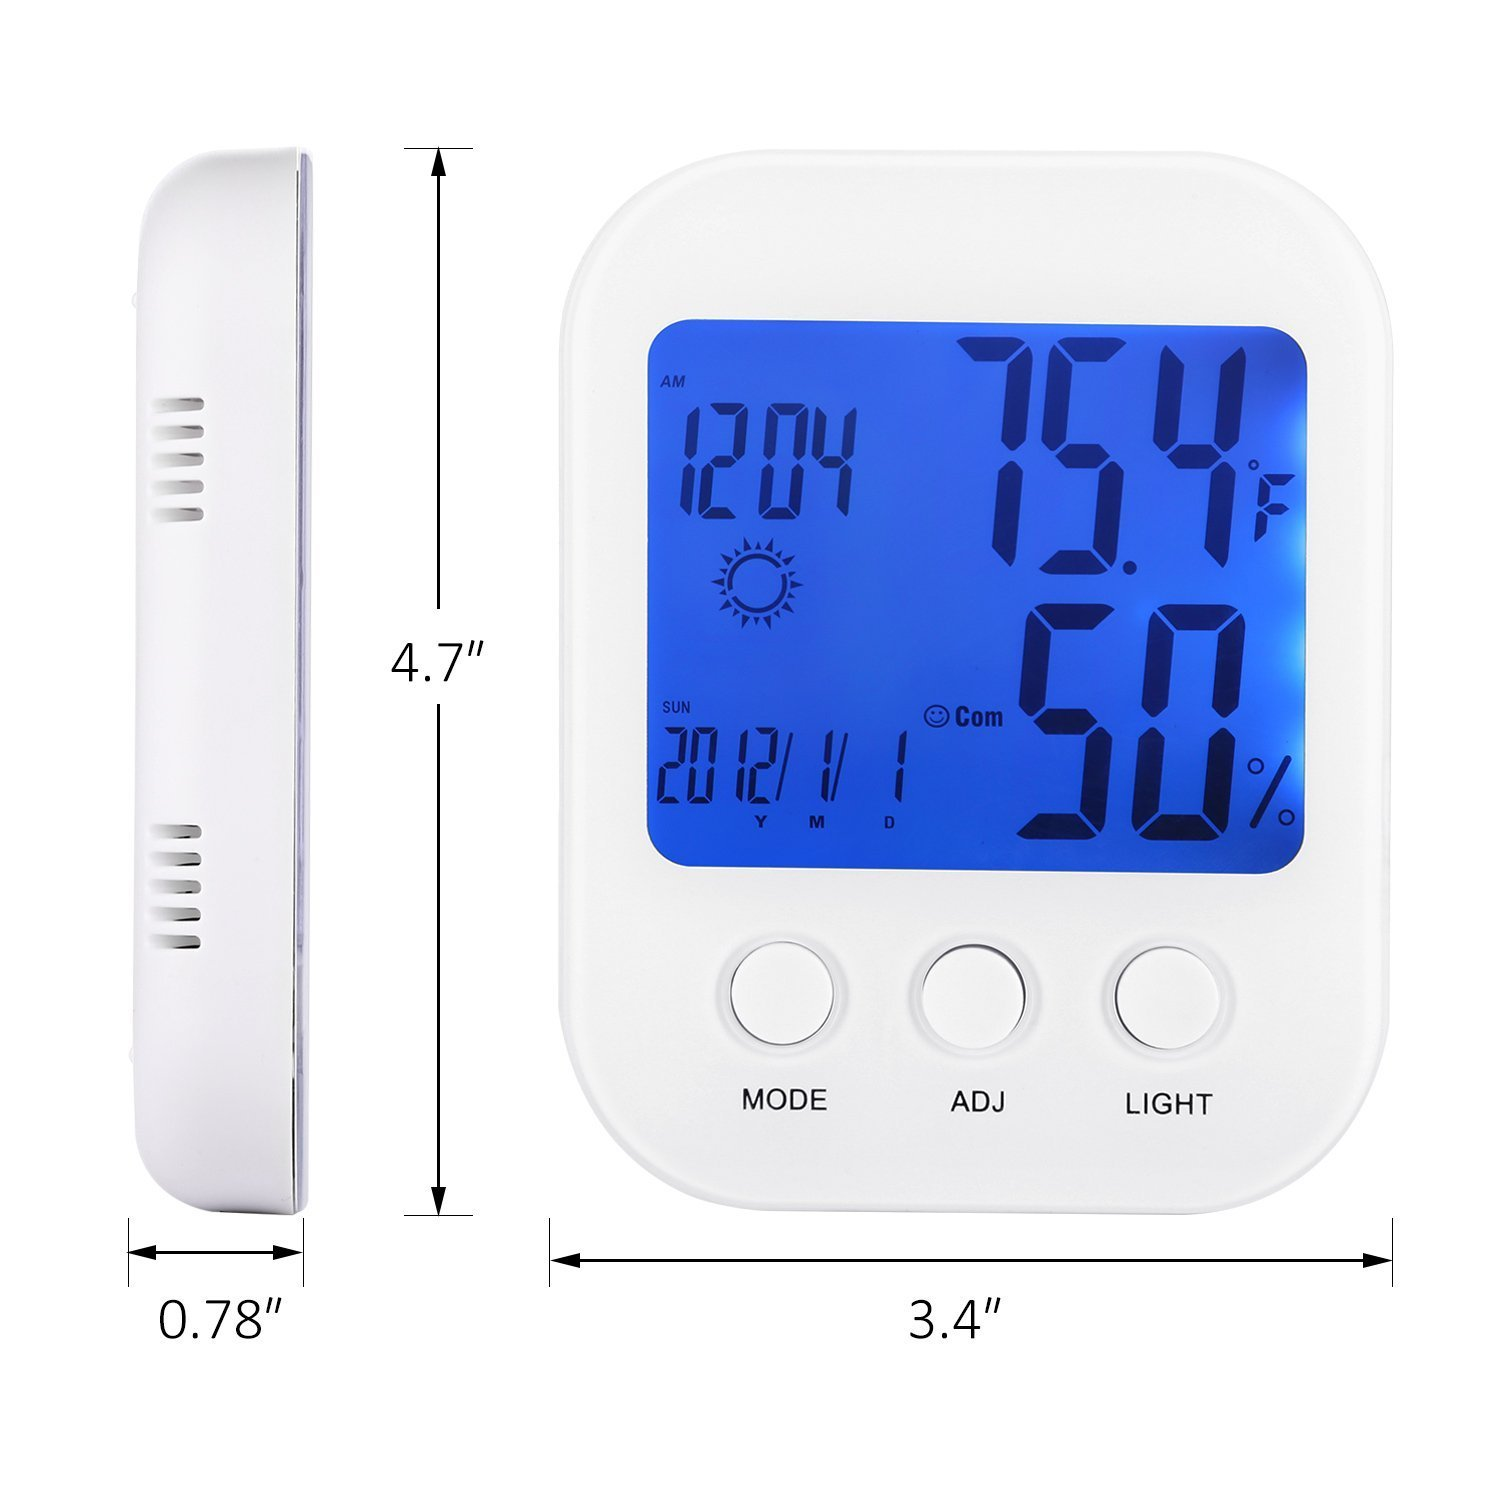 OffiHom Digital Hygrometer Indoor Thermometer Humidity Monitor Humidity Gauge LCD Display ℃/℉ Switch and Alarm Clock Function for Home Office Baby Room(White)